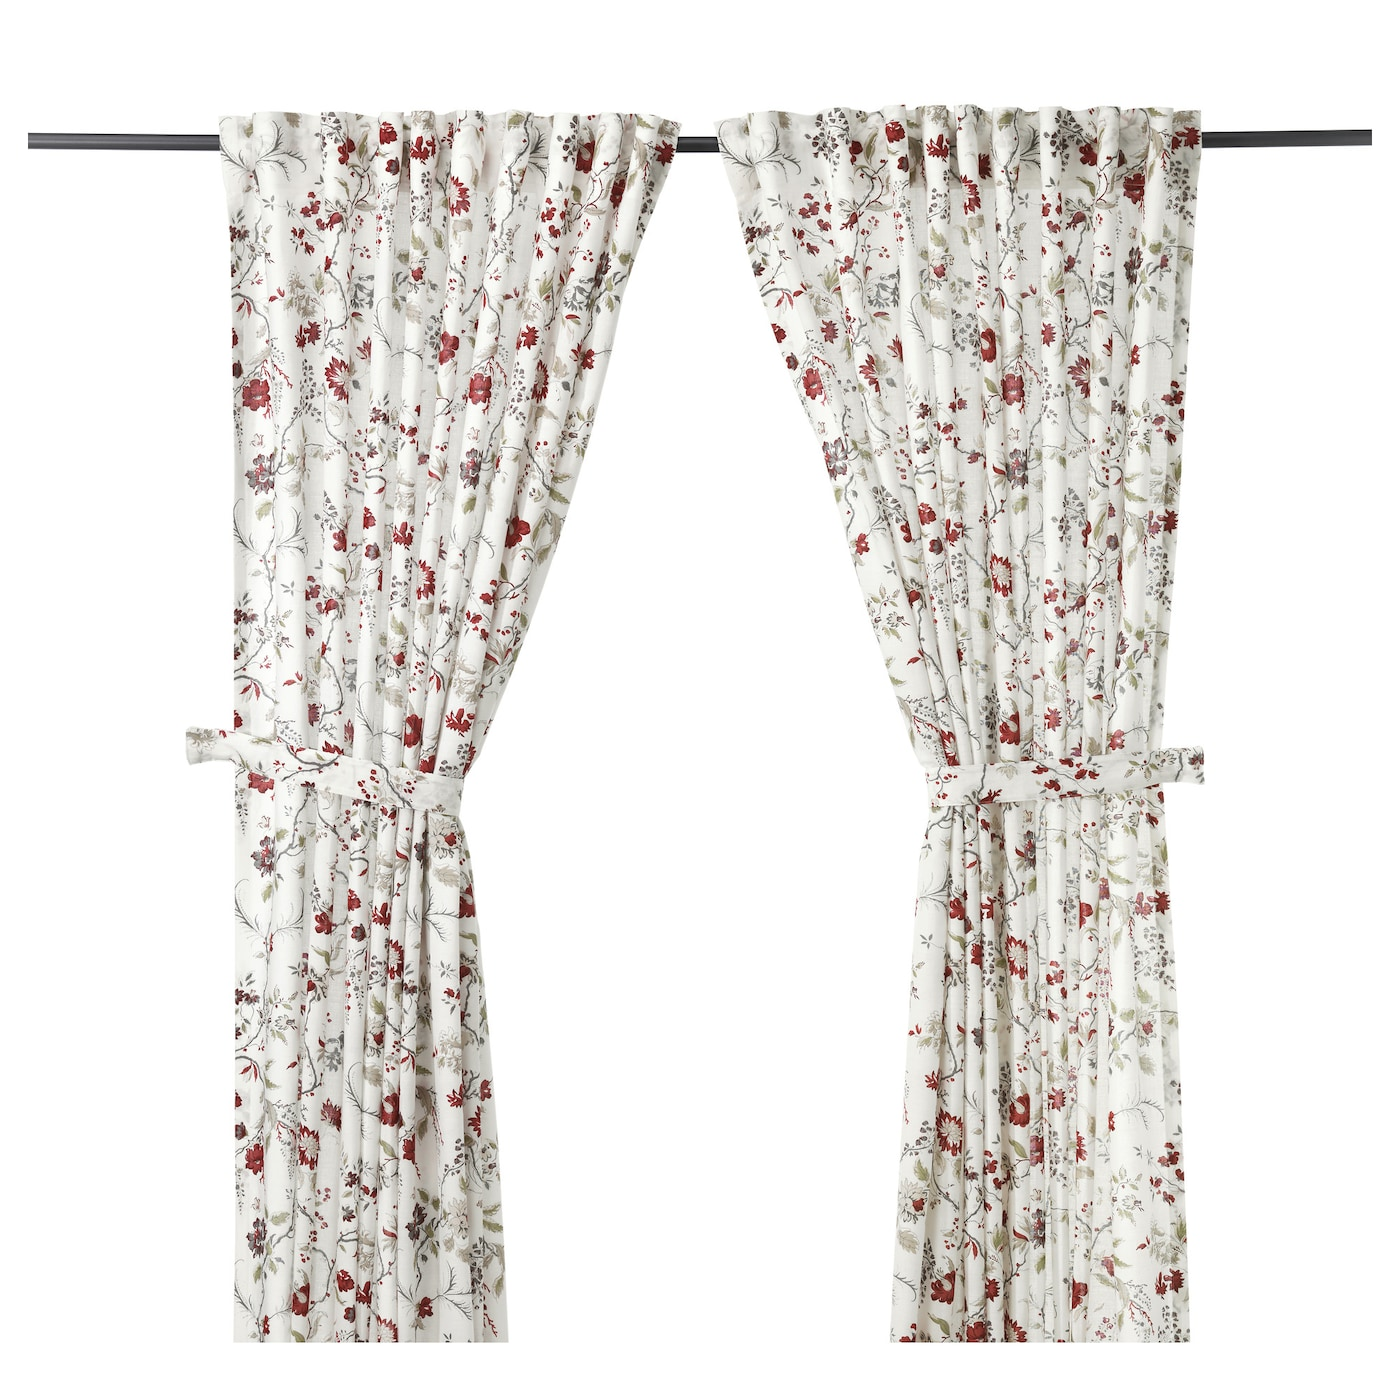 IKEA INGMARIE curtains with tie-backs, 1 pair